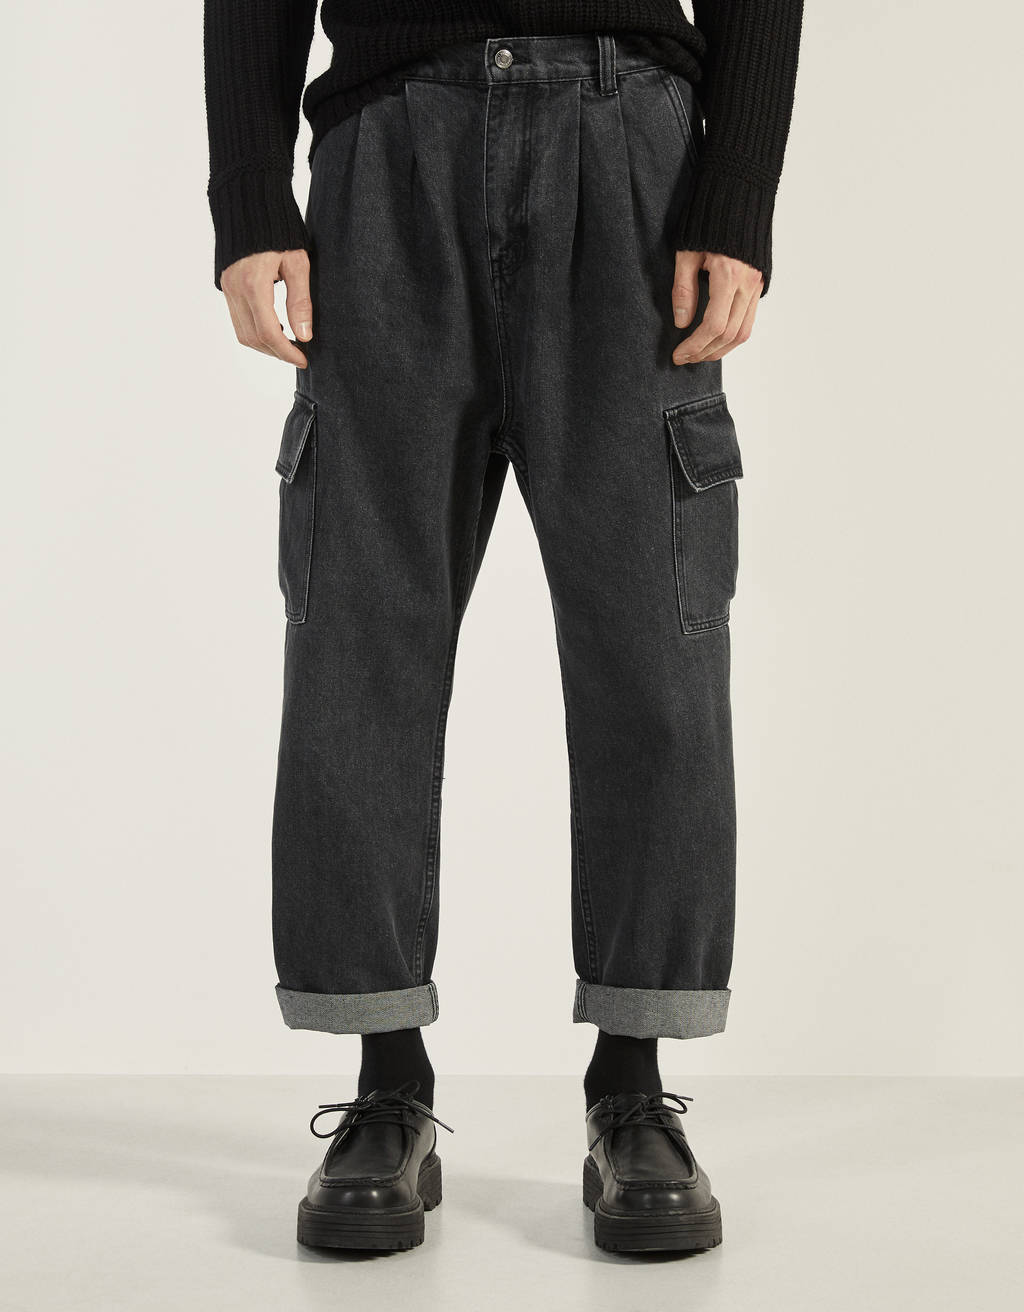 Balloon fit cargo jeans